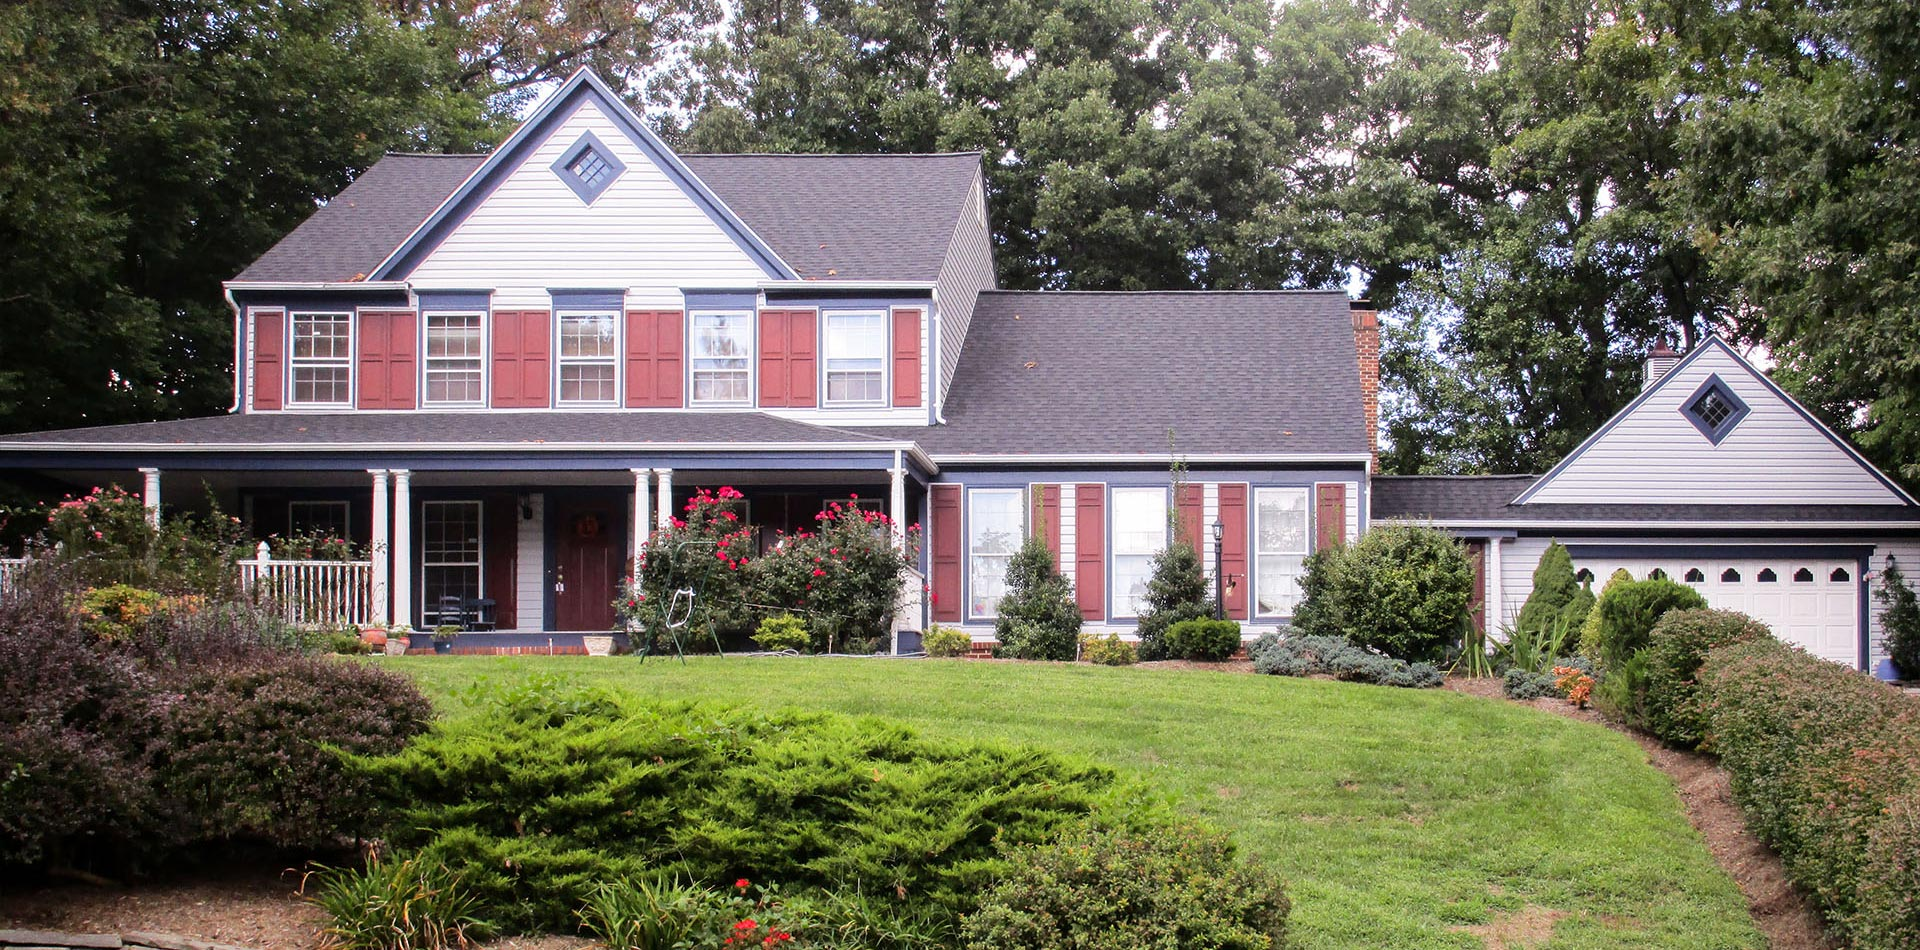 Roofing Contractor Siding Contractor Herndon Va